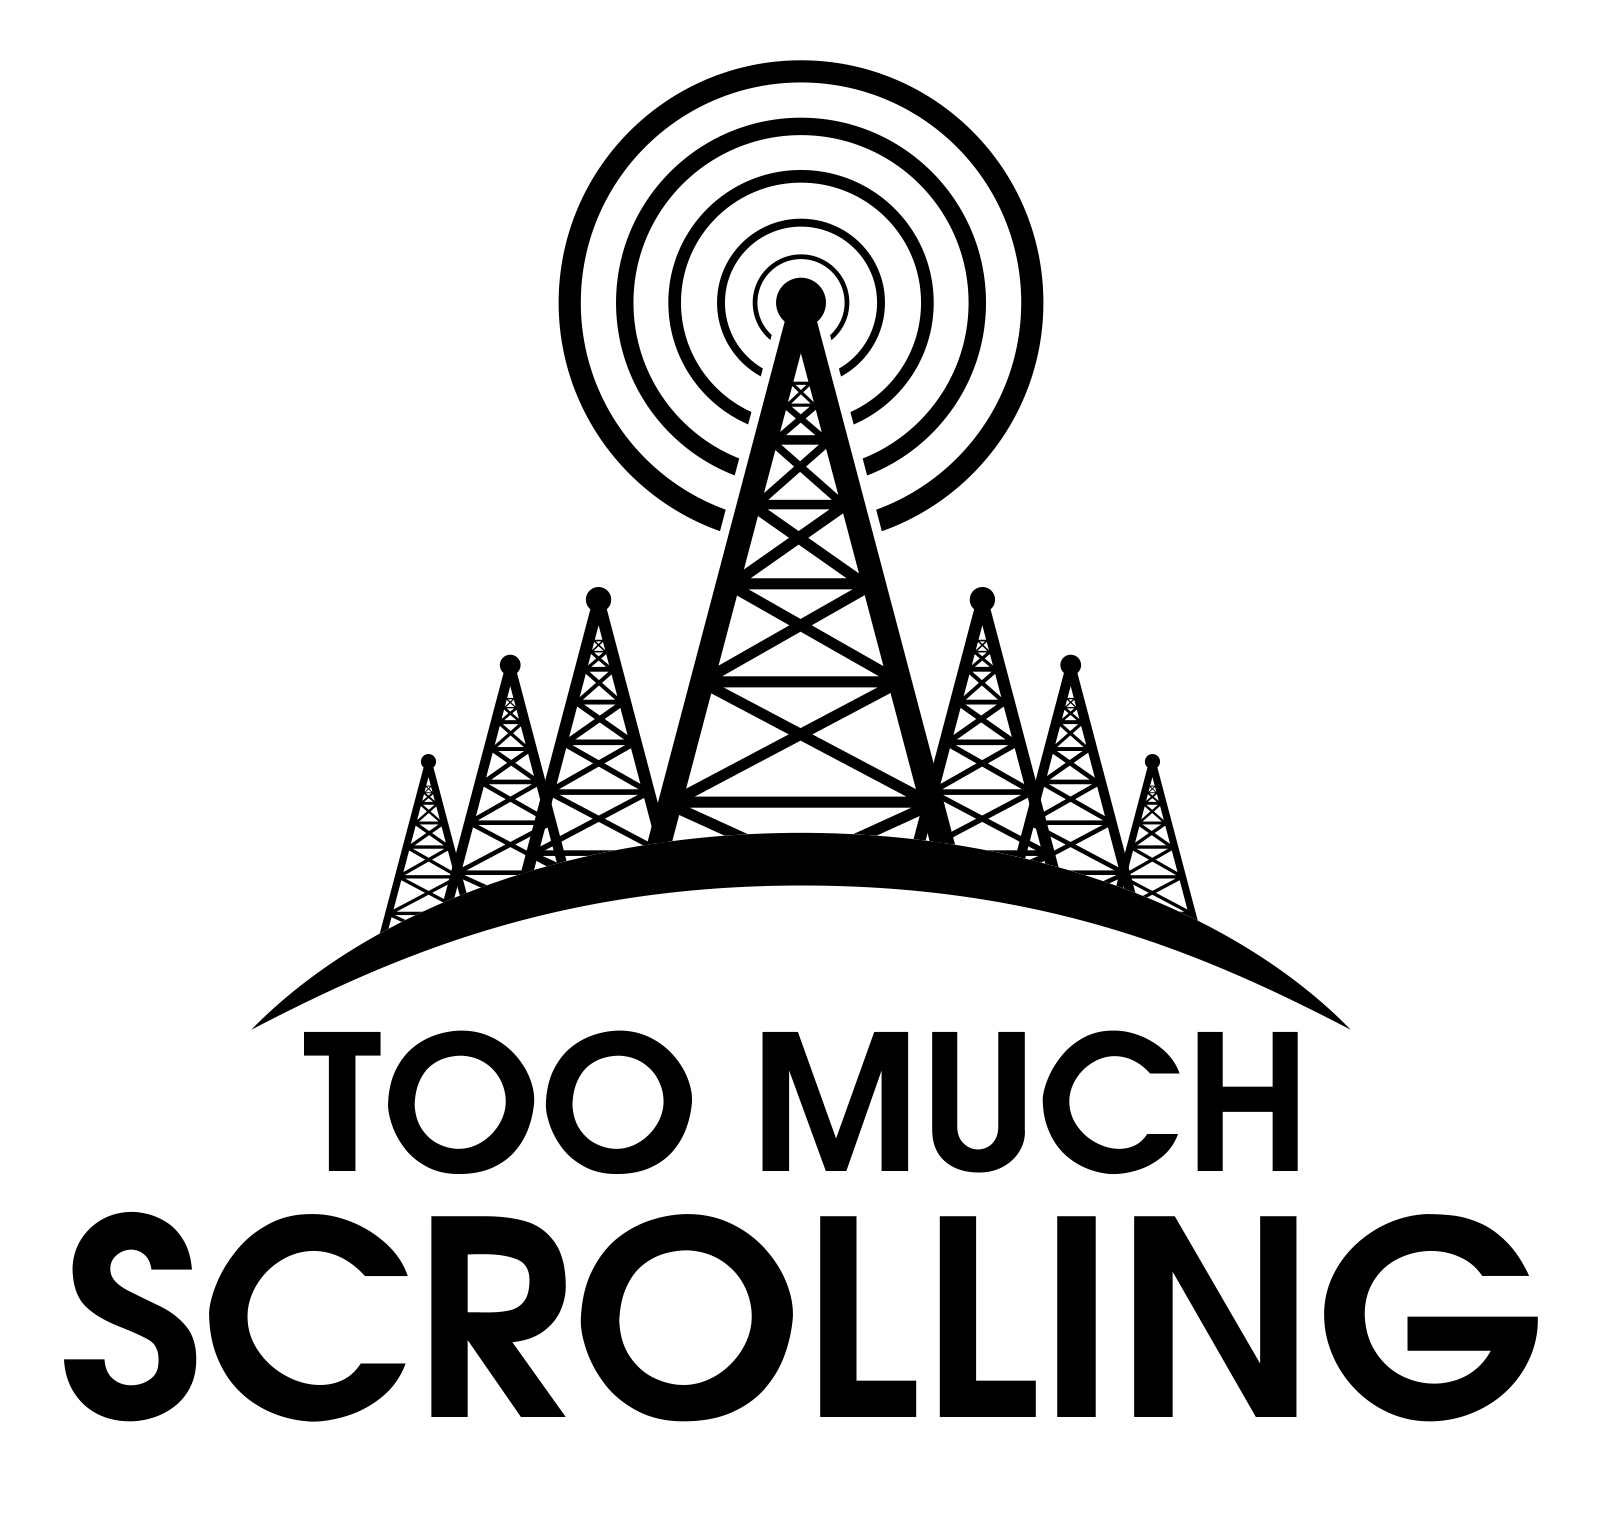 toomuchscrolling